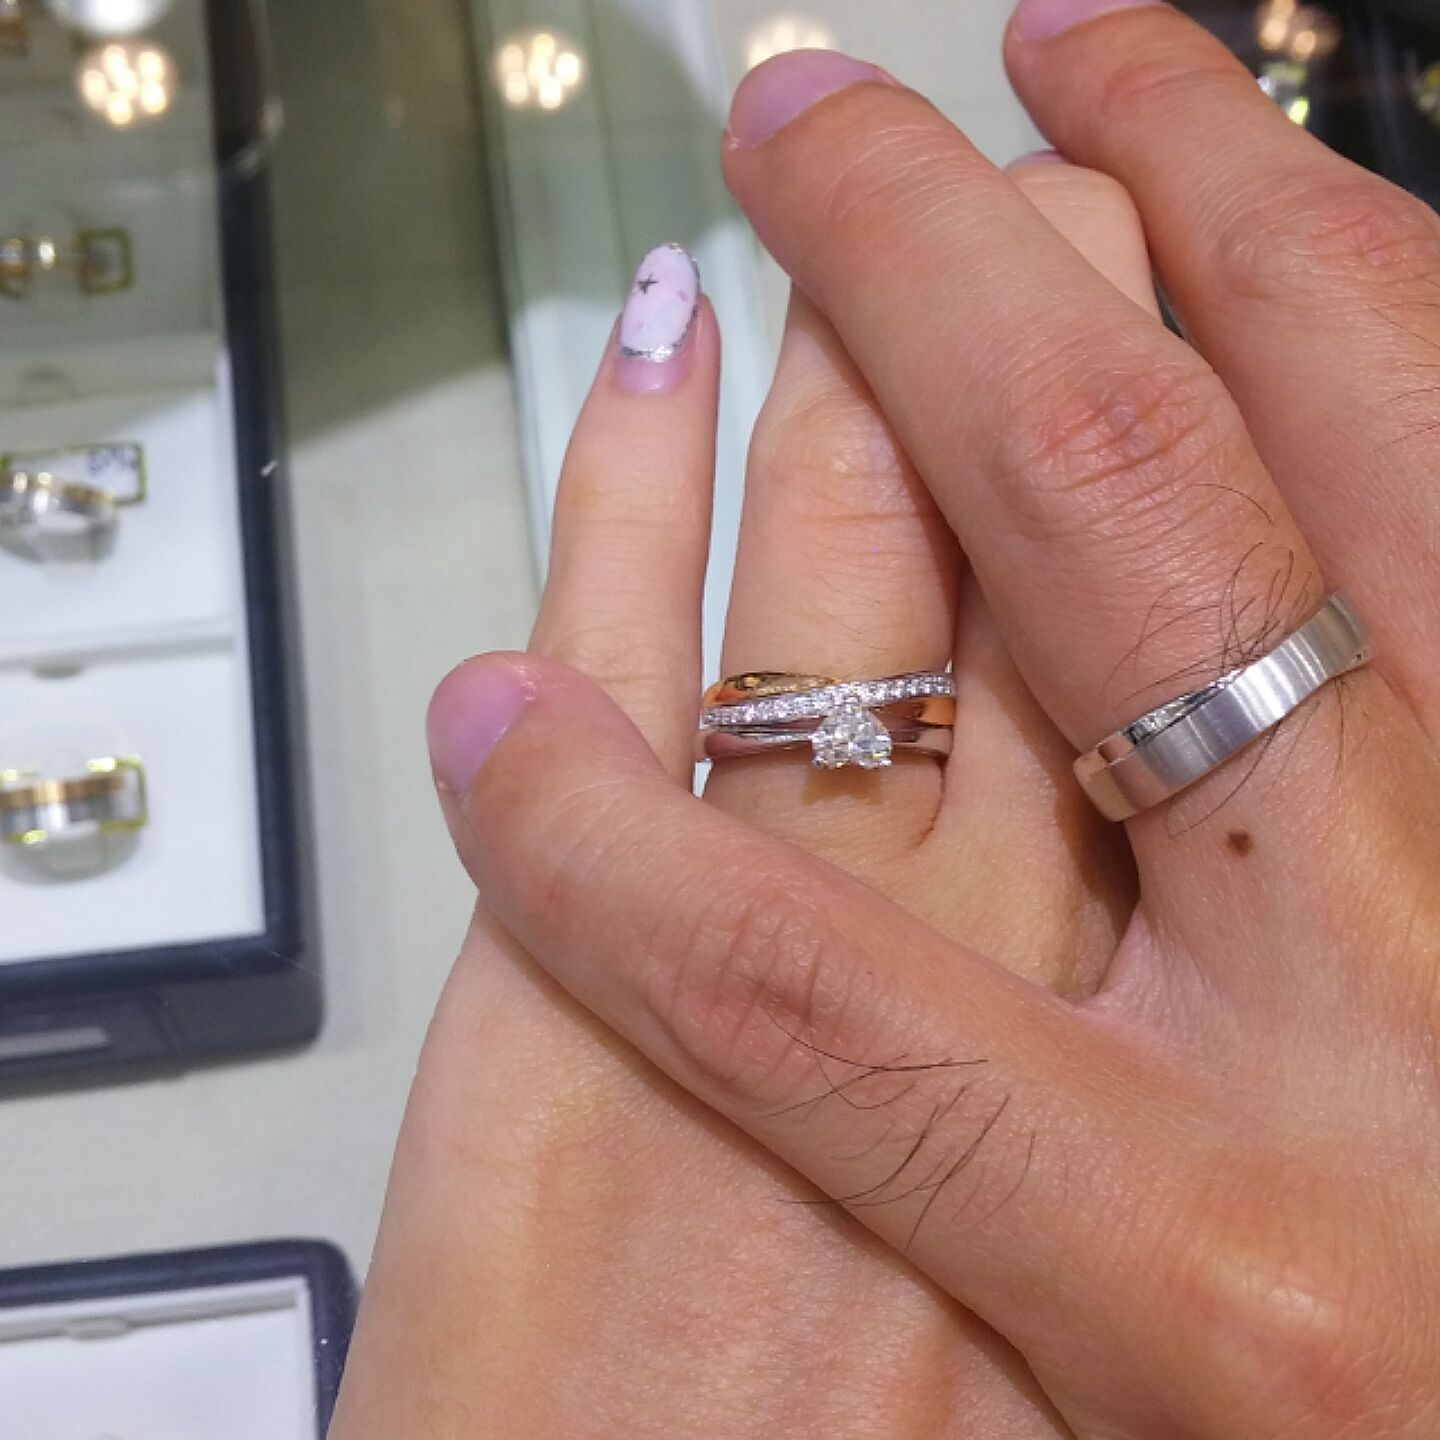 EBDlHjappv cross wedding bands Settled our wedding bands from jannpaul dayrebrides Really love the criss cross design infinity I got the rose gold and white gold one with loose